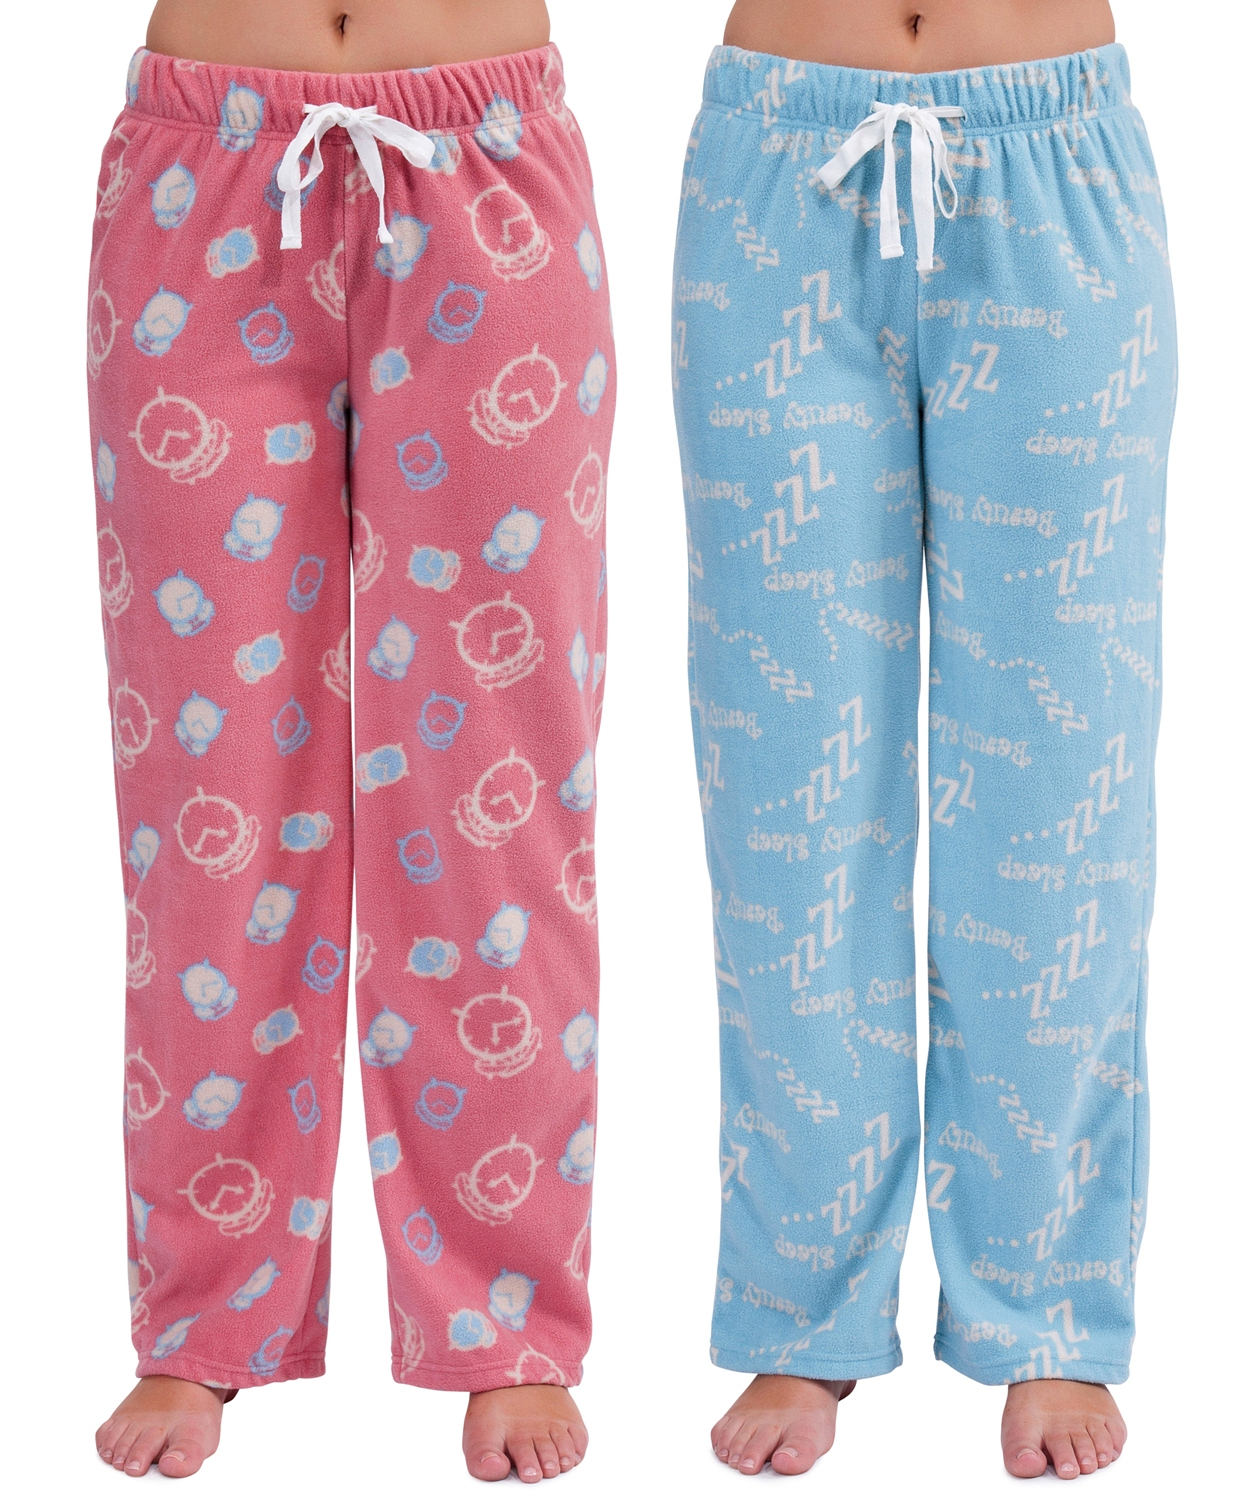 Shop Target for Lounge pants Pants you will love at great low prices. Spend $35+ or use your REDcard & get free 2-day shipping on most items or same-day pick-up in store.